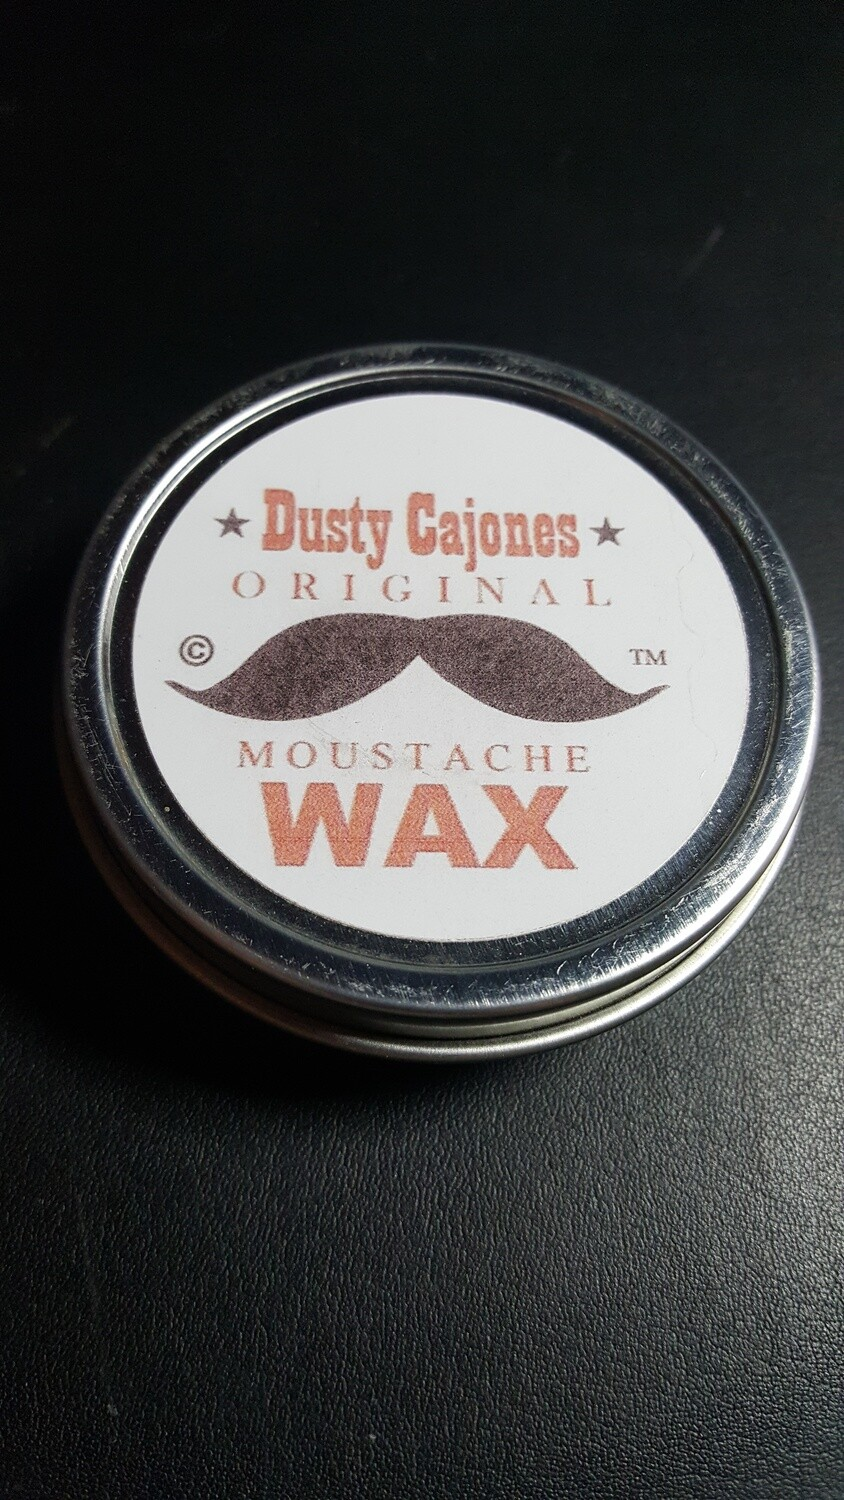 Dusty Cajones Original Mustache Wax